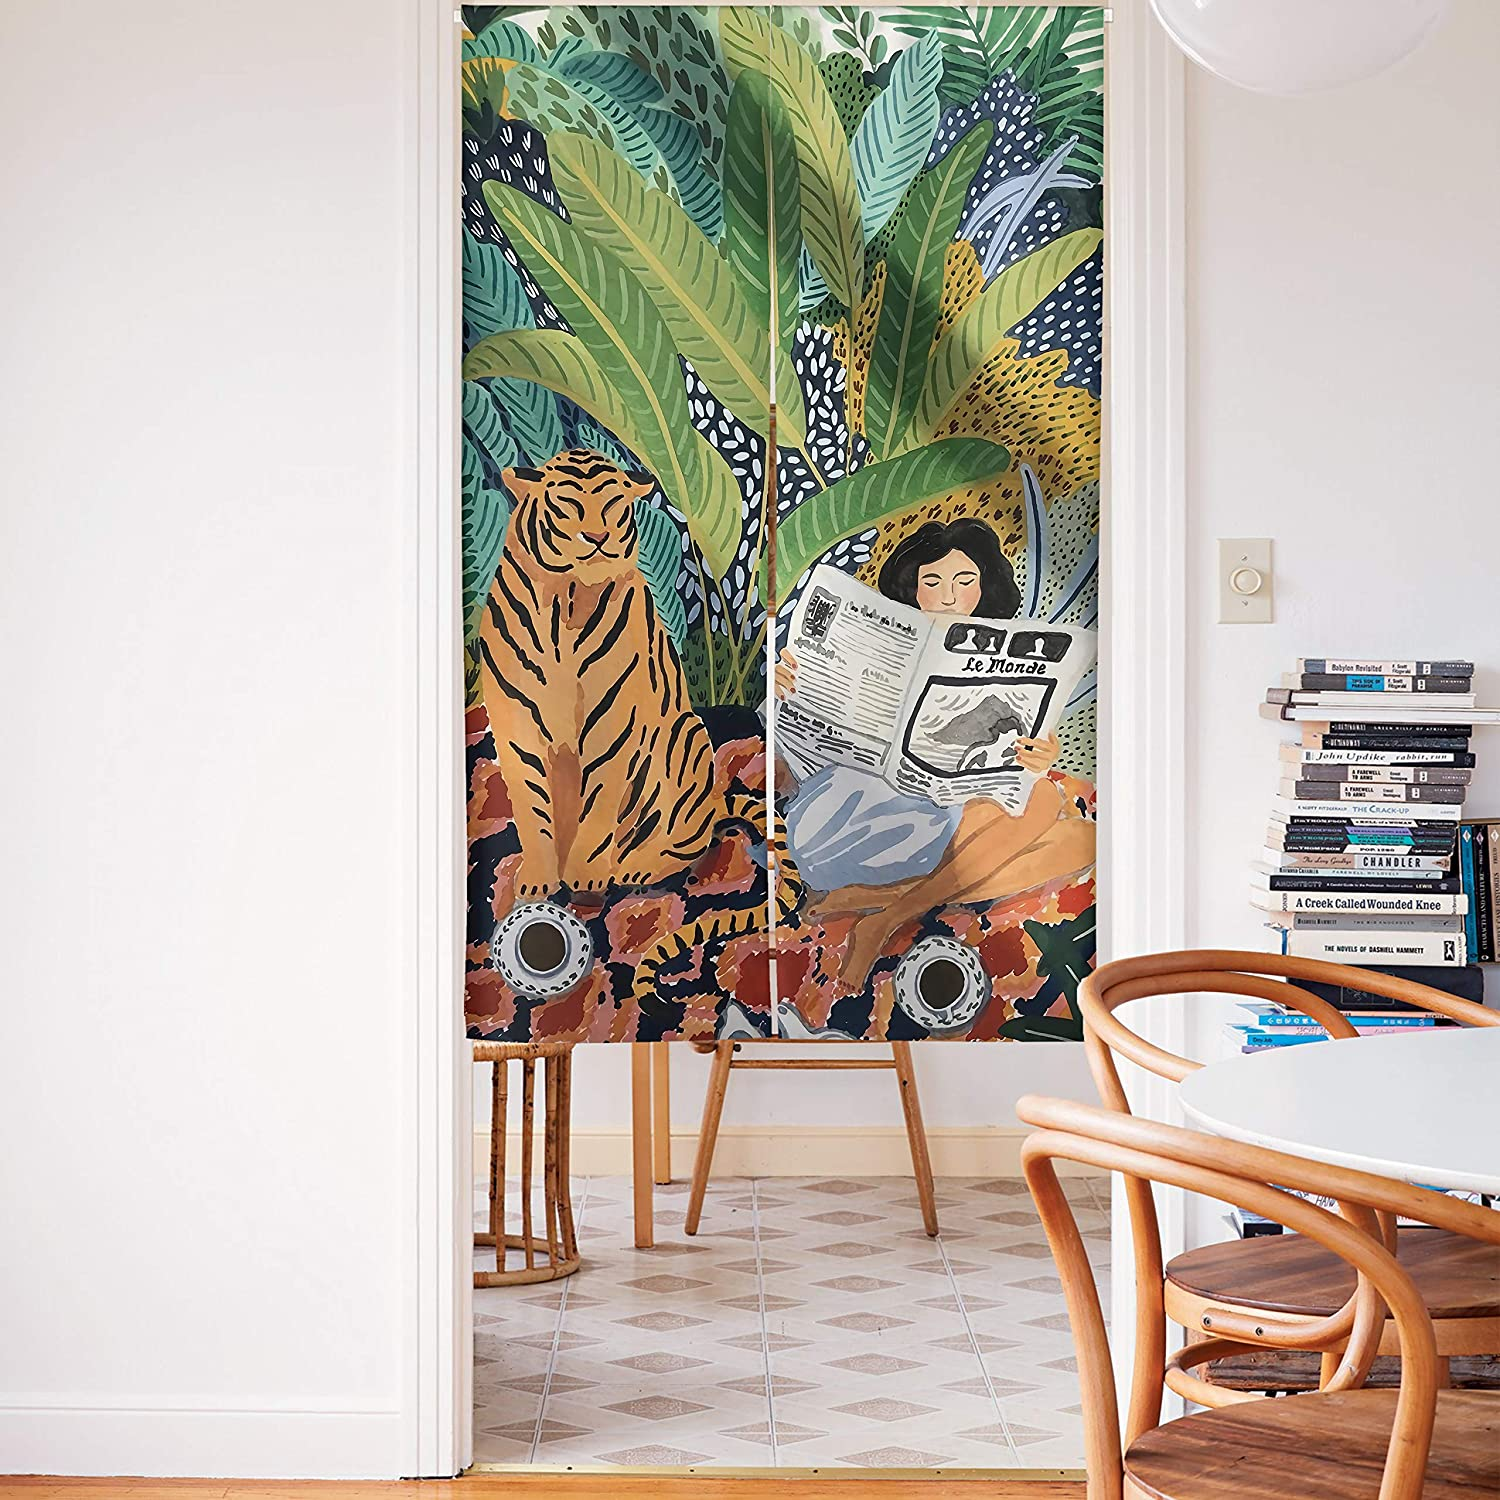 Spanker Space Artist Colorful Design A Lovely Tiger Sit by A Lady Japanese Noren Doorway Curtain Fabric Cotton Linen for Home Kitchen Door Decor 34 x 59 Inches